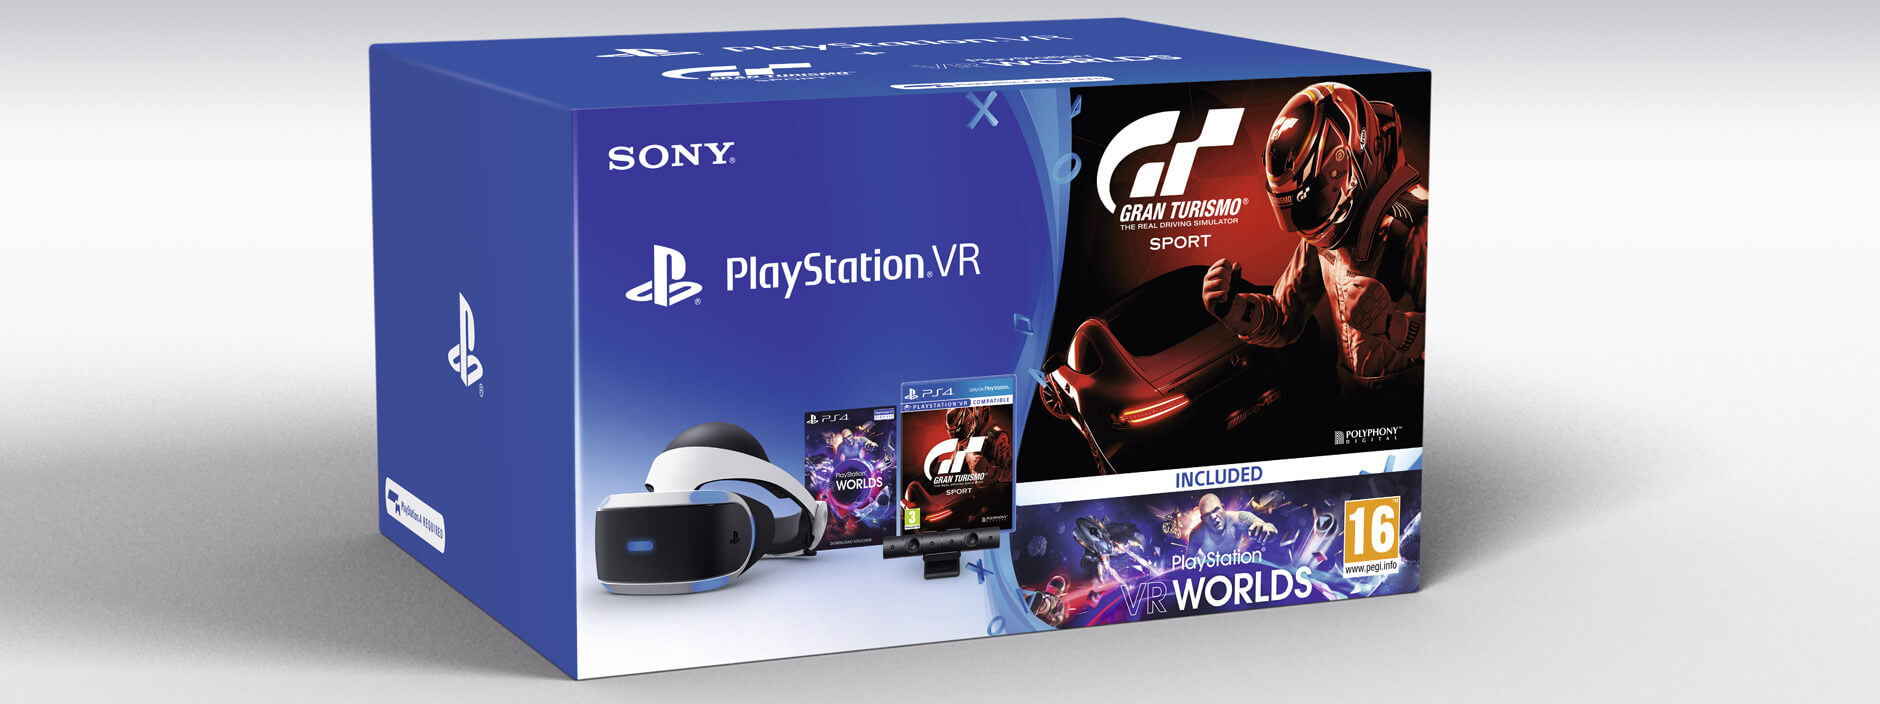 Sony PS VR (CUH-ZVR1EY) Система виртуальной реальности для PlayStation 4 + игра VRW VCH + игра GTS + PS4 Камера v2 [PS719951162] sony playstation 4 pro 1tb cuh 7008b